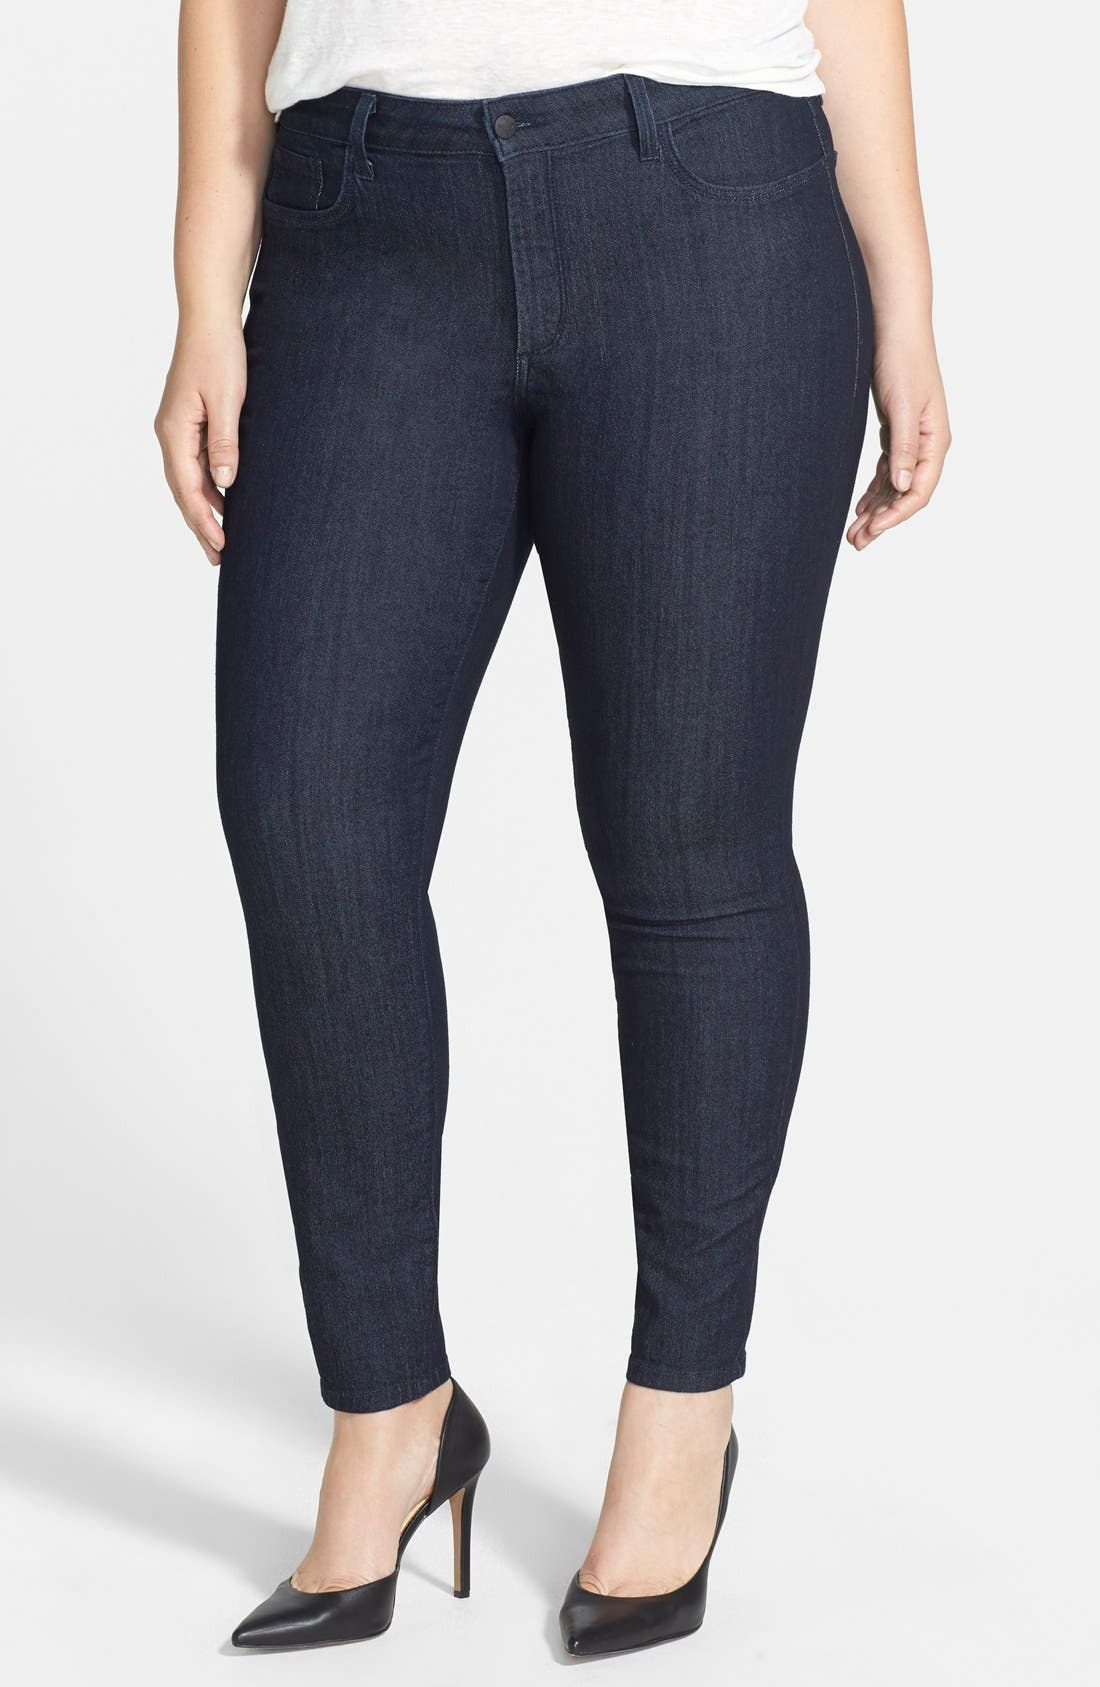 Alternate Image 1 Selected - NYDJ 'Ami' Tonal Stitch Stretch Skinny Jeans (Dark Enzyme) (Plus Size)